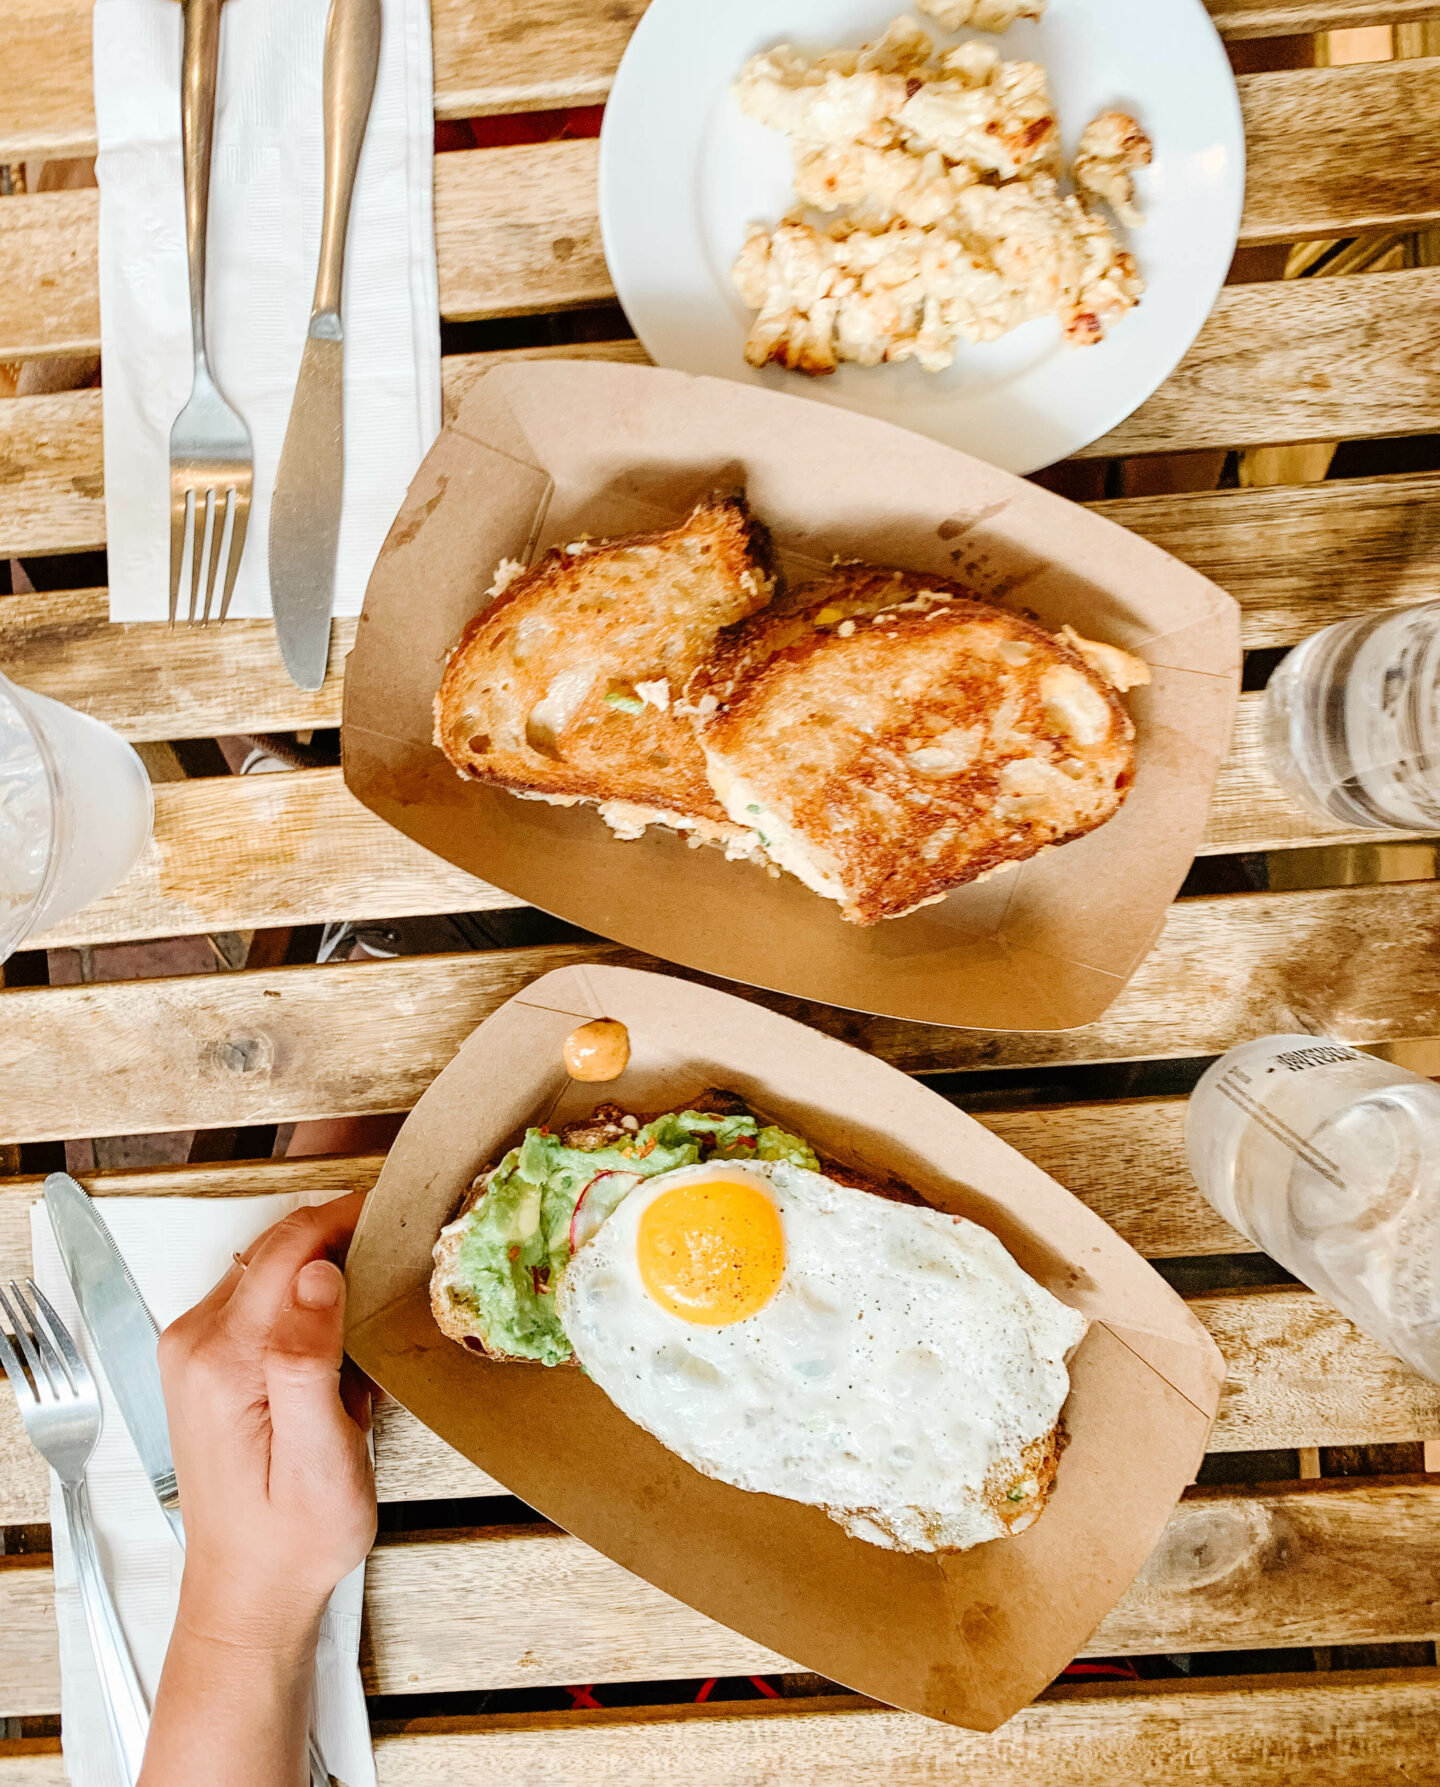 Where to eat in LA: Best places